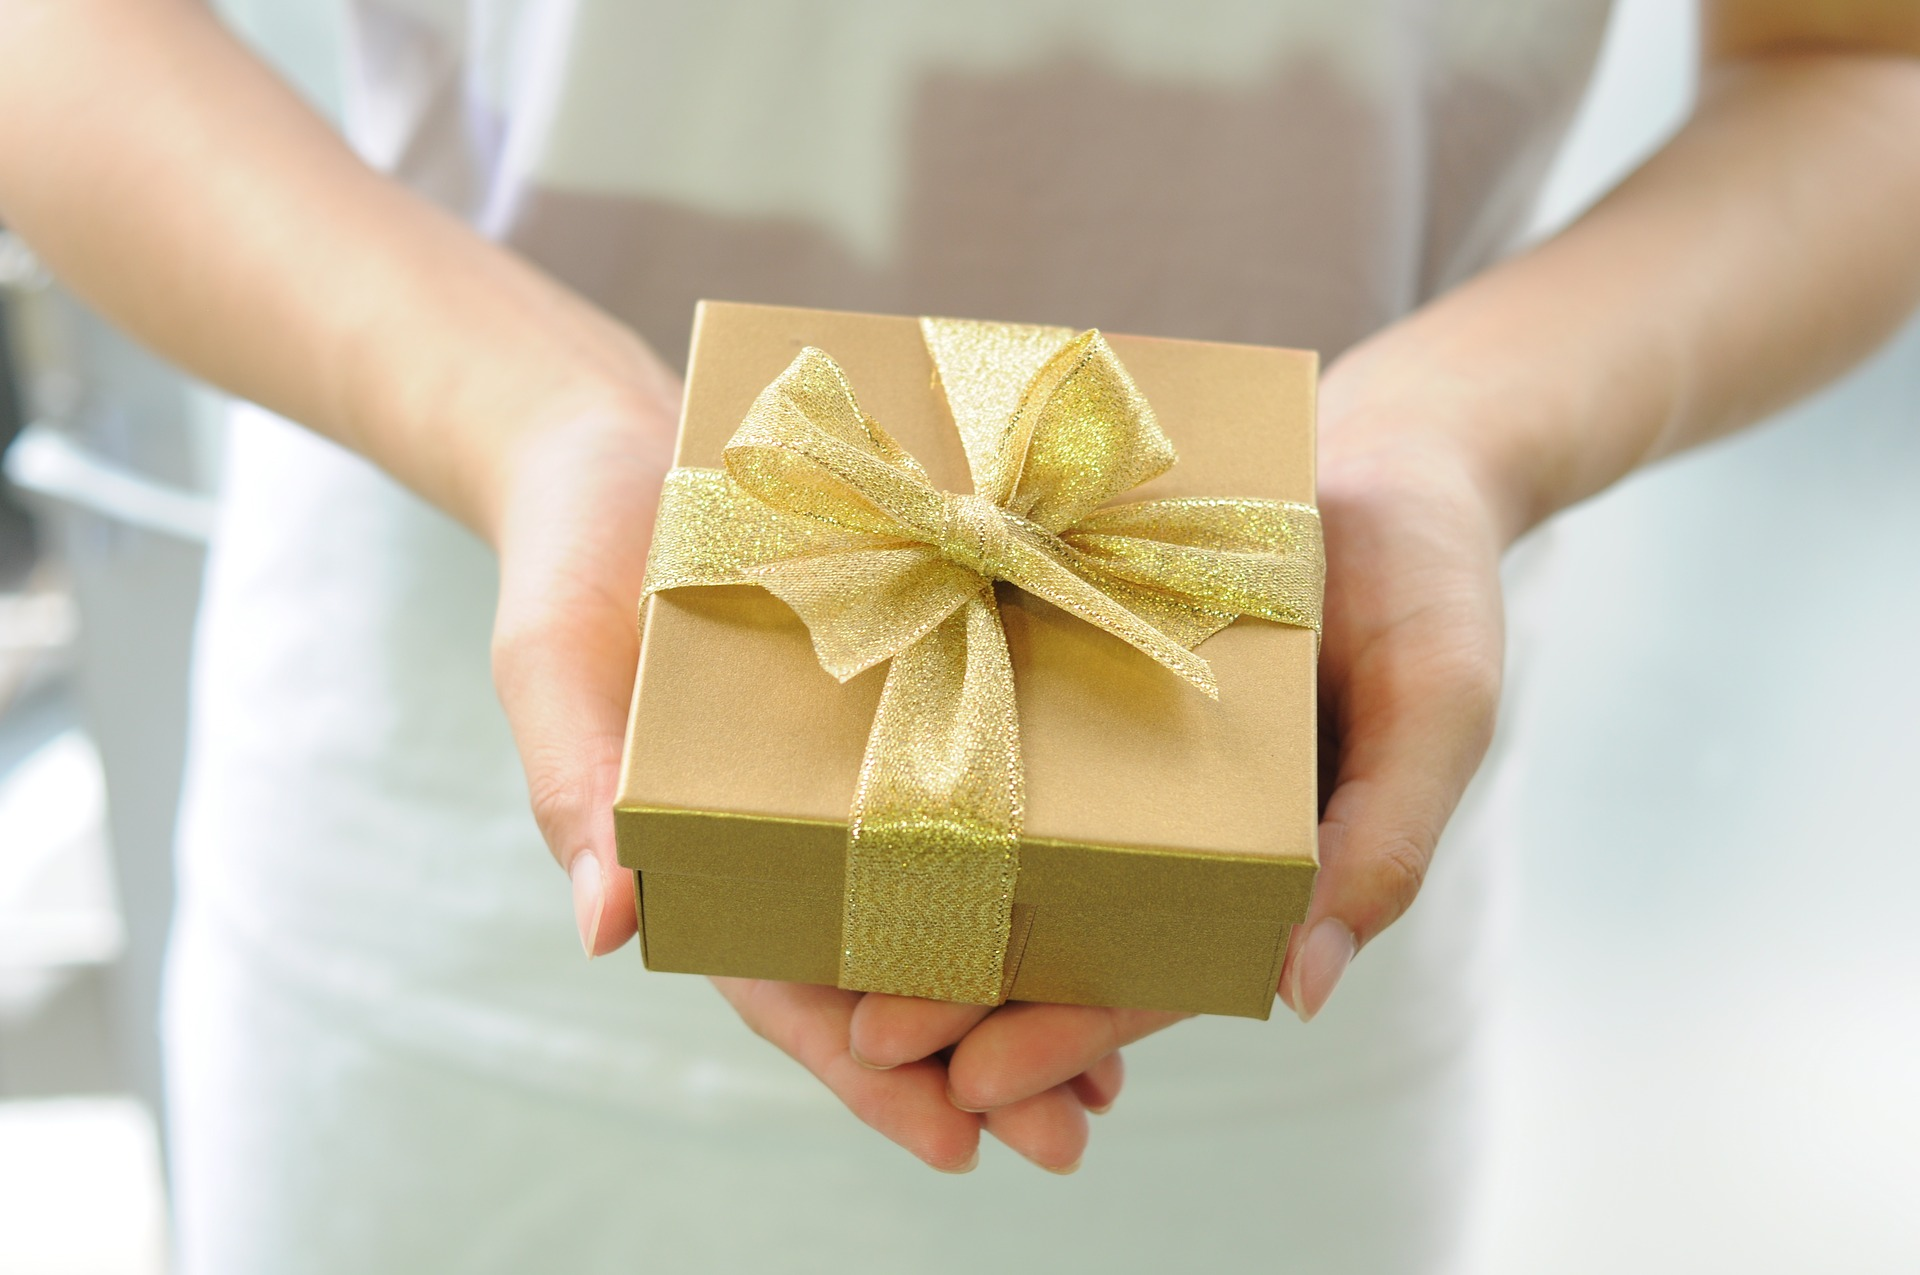 Employee Recognition: The Gift That Keeps on Giving?